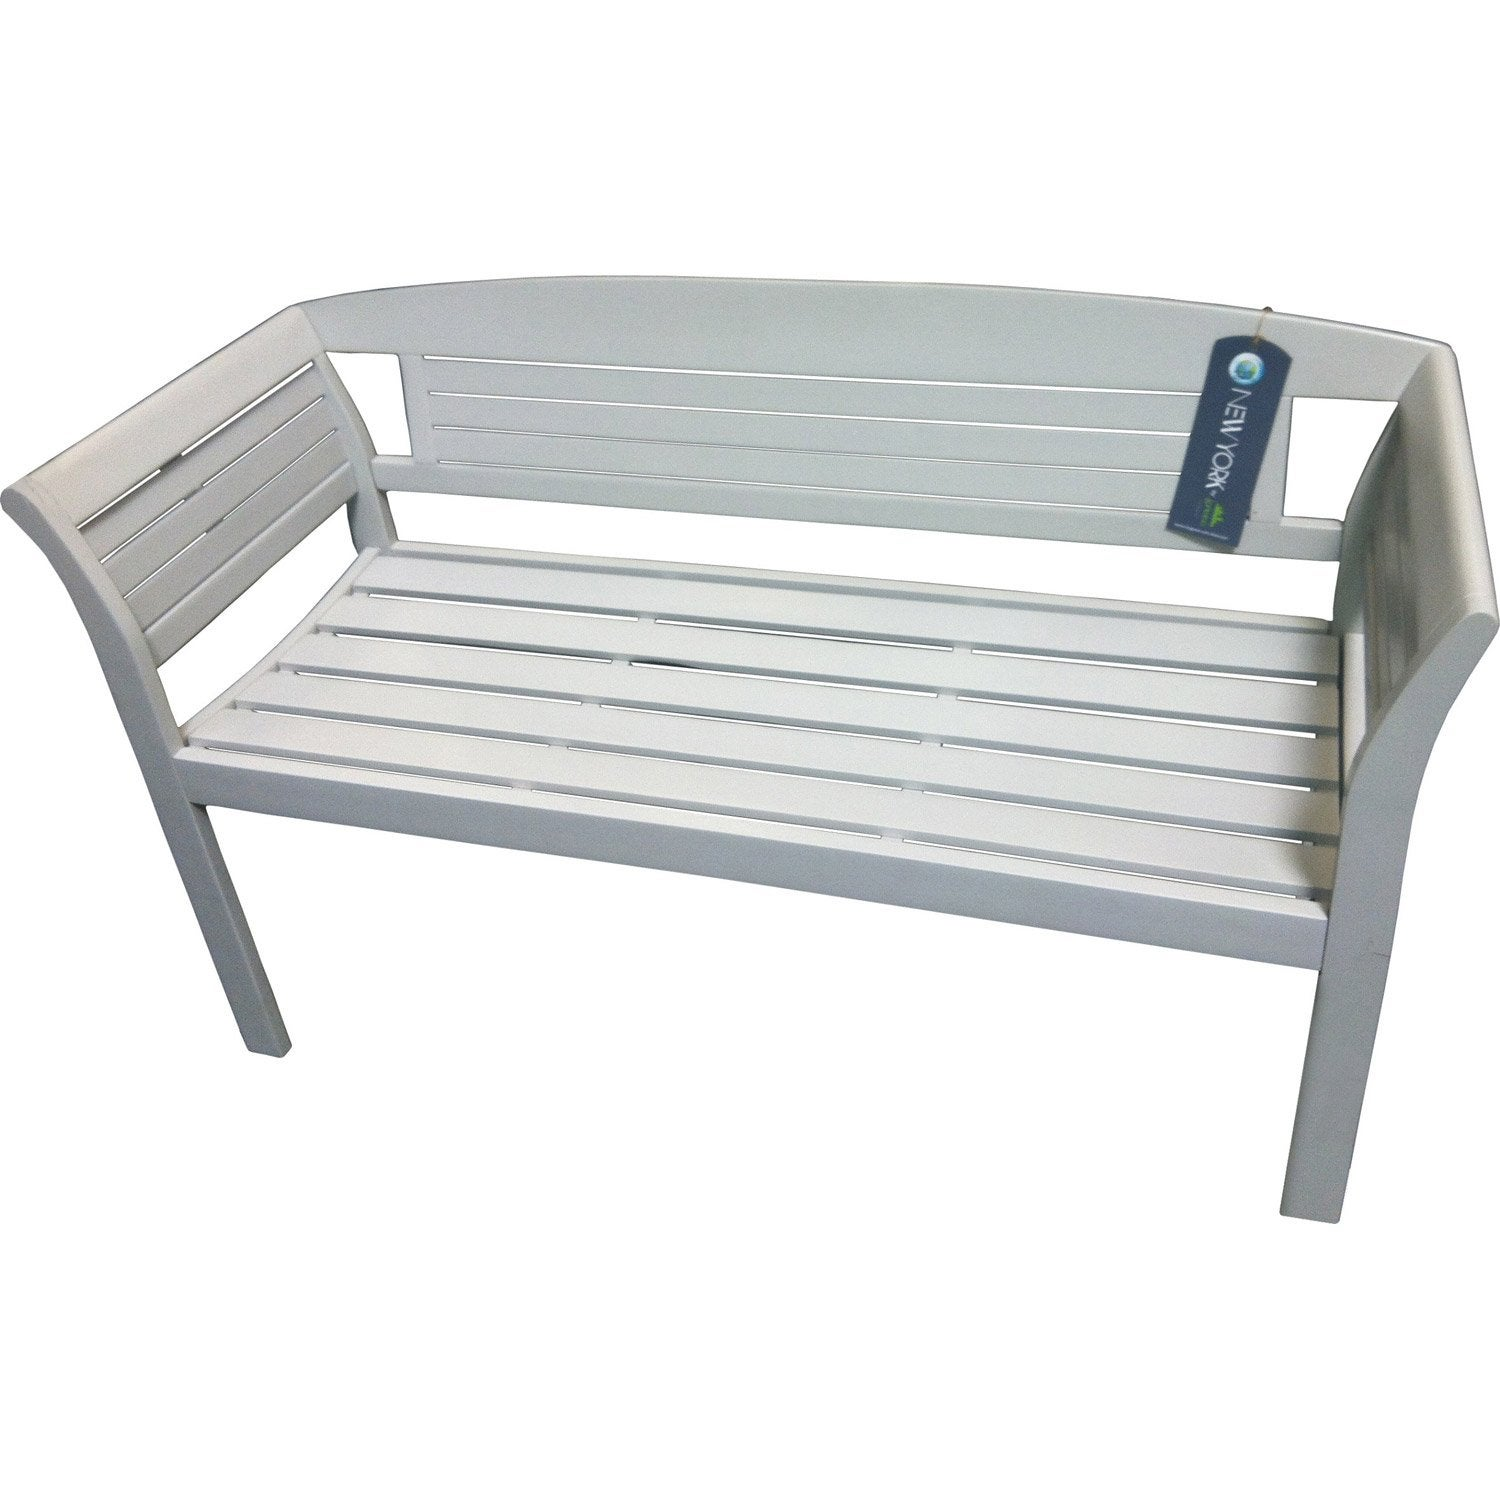 Banc 2 places de jardin en bois new york muscade leroy merlin - Banc de jardin 2 places ...